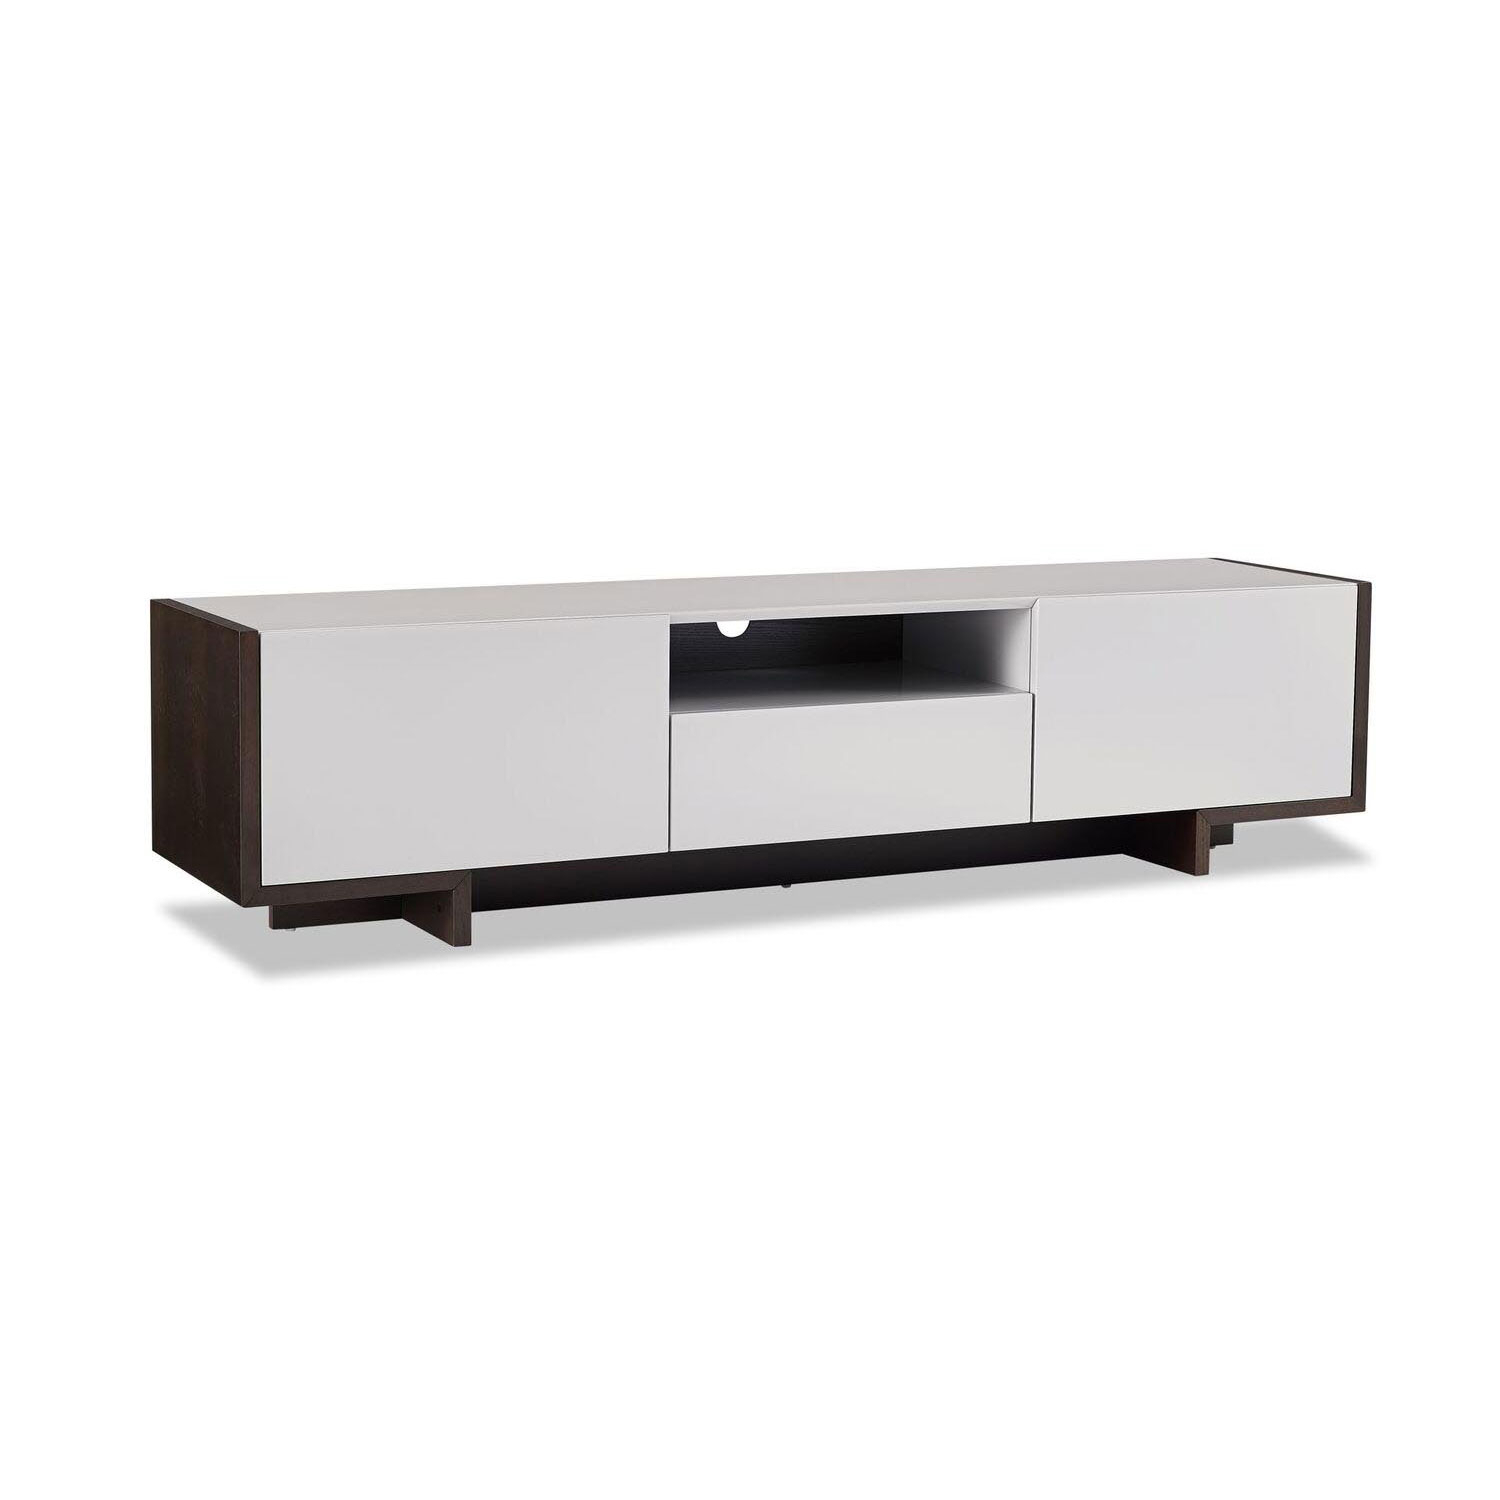 Whiteline Modern Living Noah Tv Unit Ec1463 Tau/blk | Bellacor Intended For Noah 75 Inch Tv Stands (Photo 1 of 30)